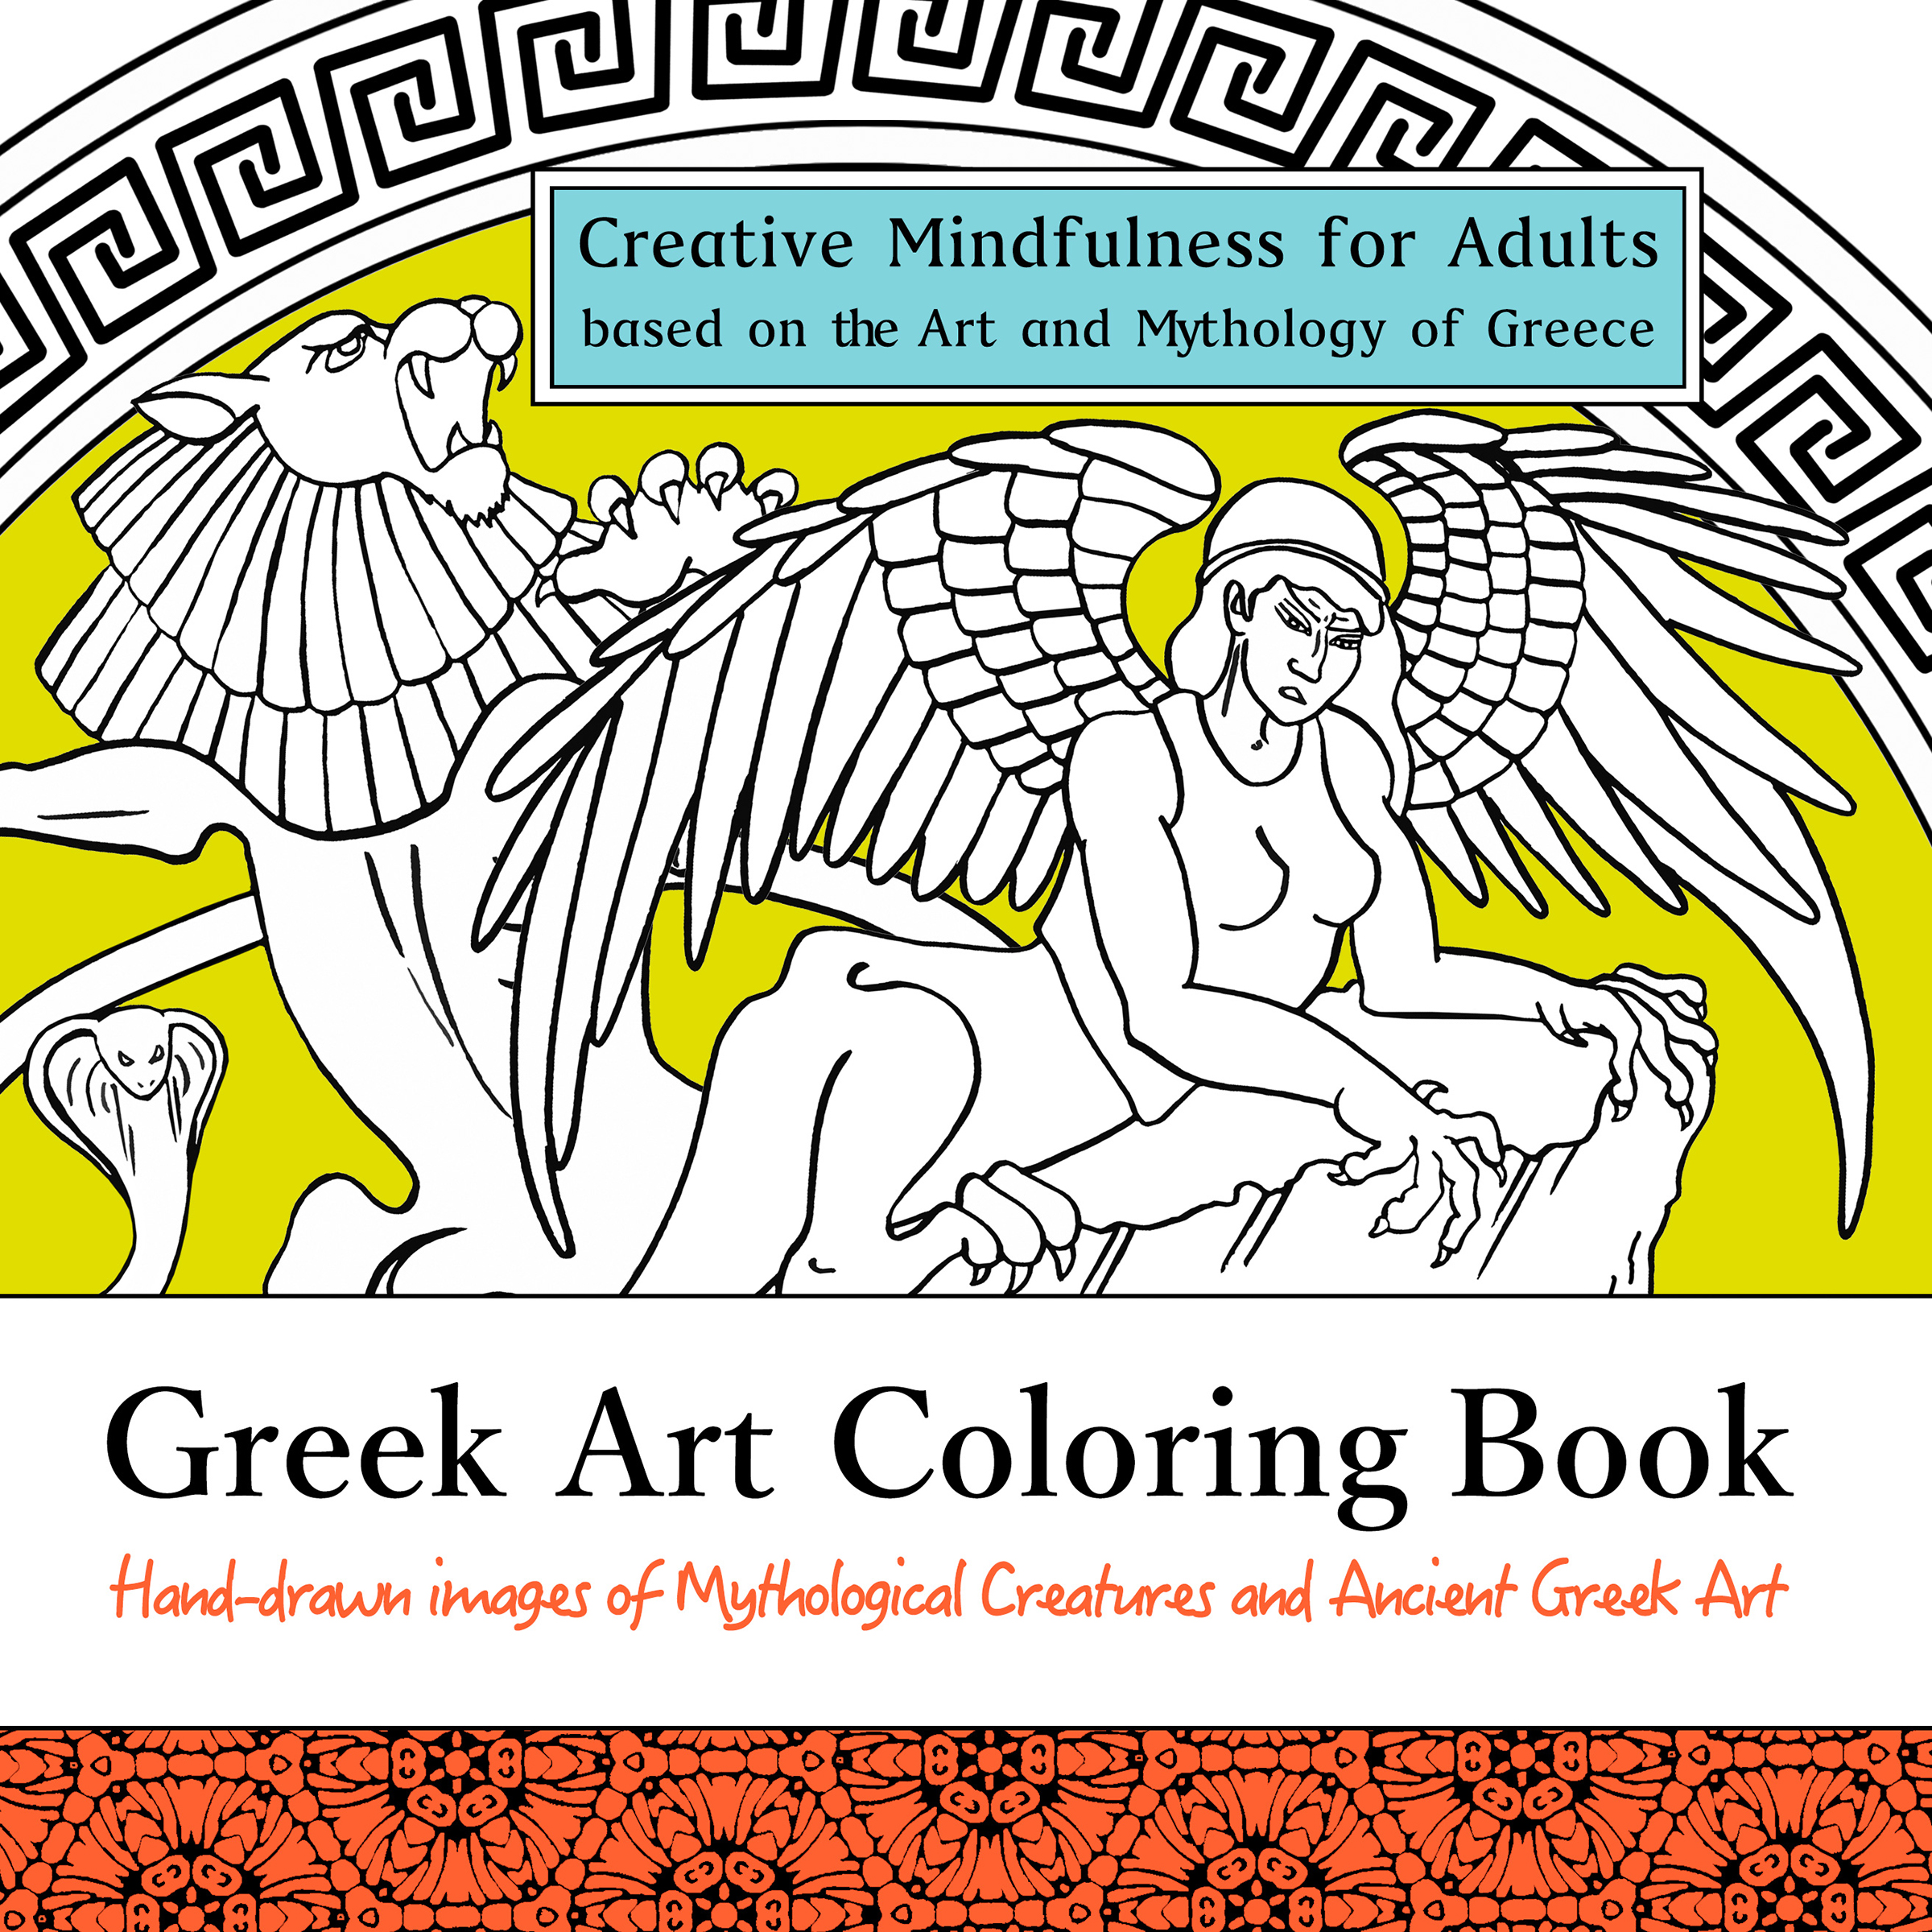 Cover-Greek-Coloring-Book.jpg